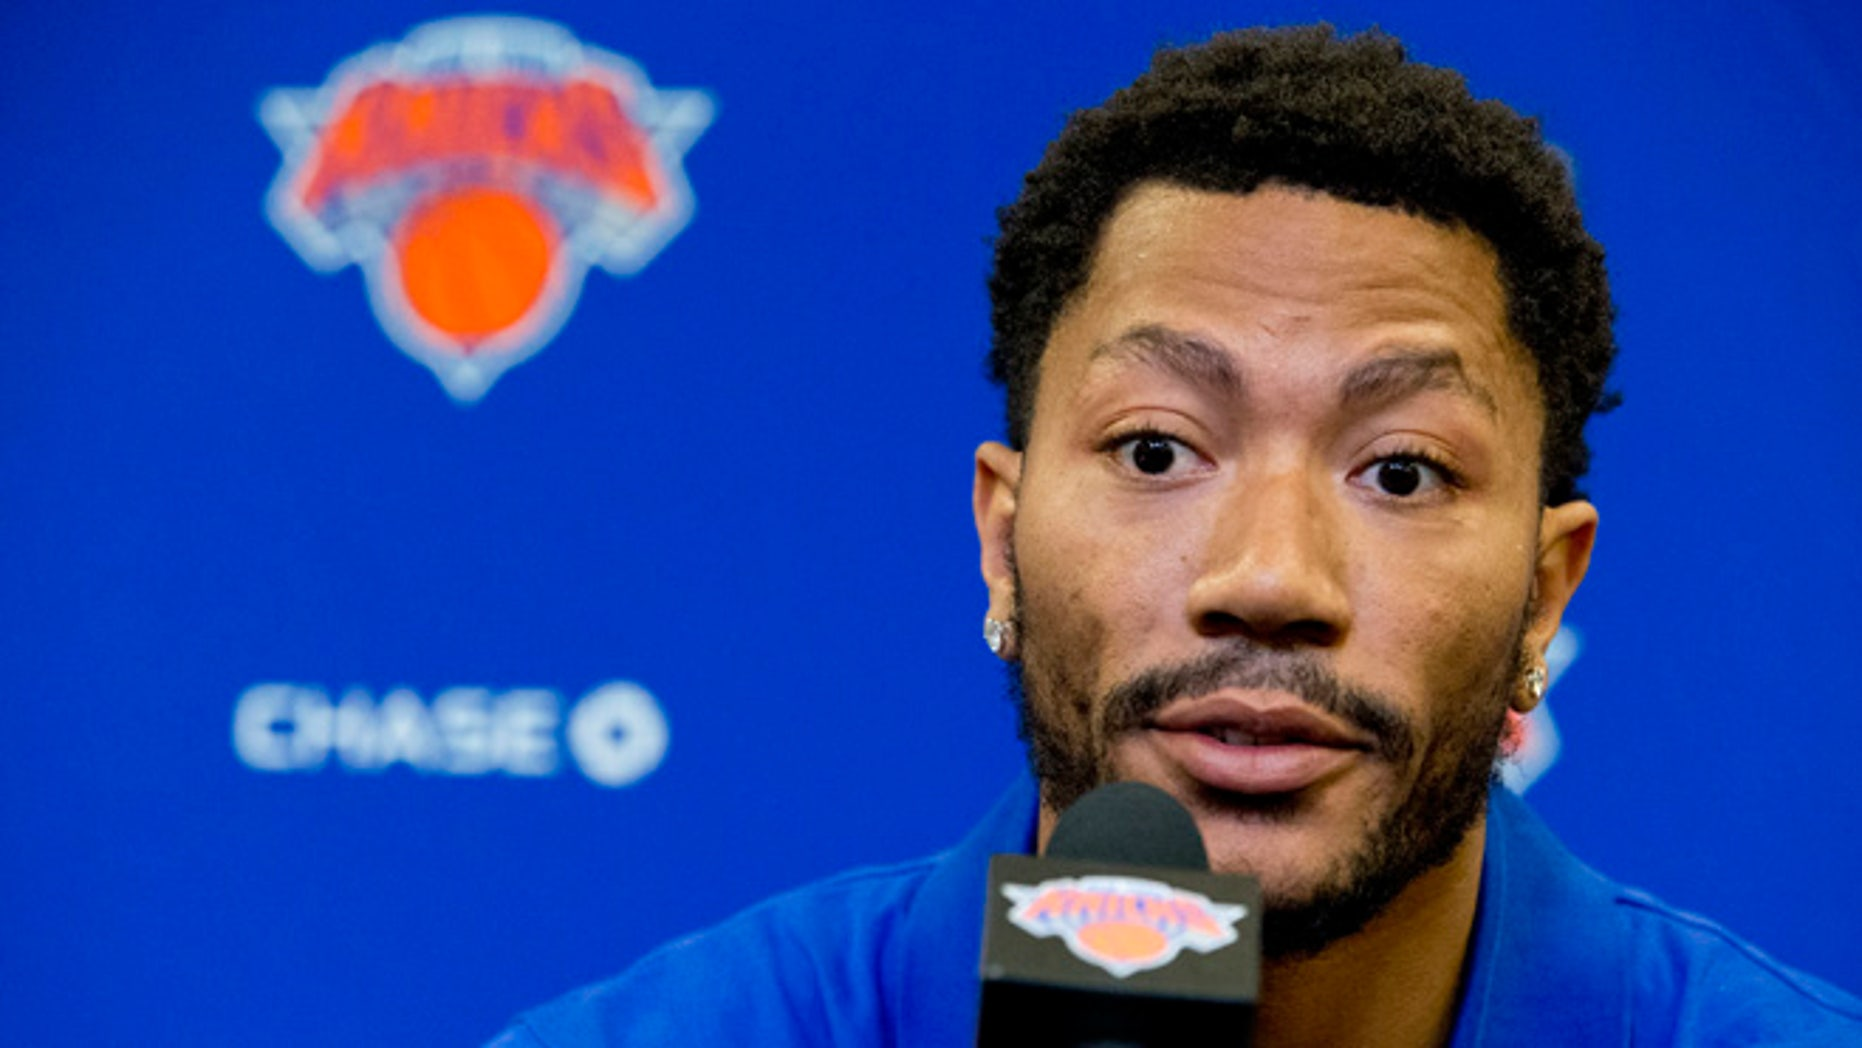 Derrick Rose during a news conference on June 24, 2016 at Madison Square Garden in New York.